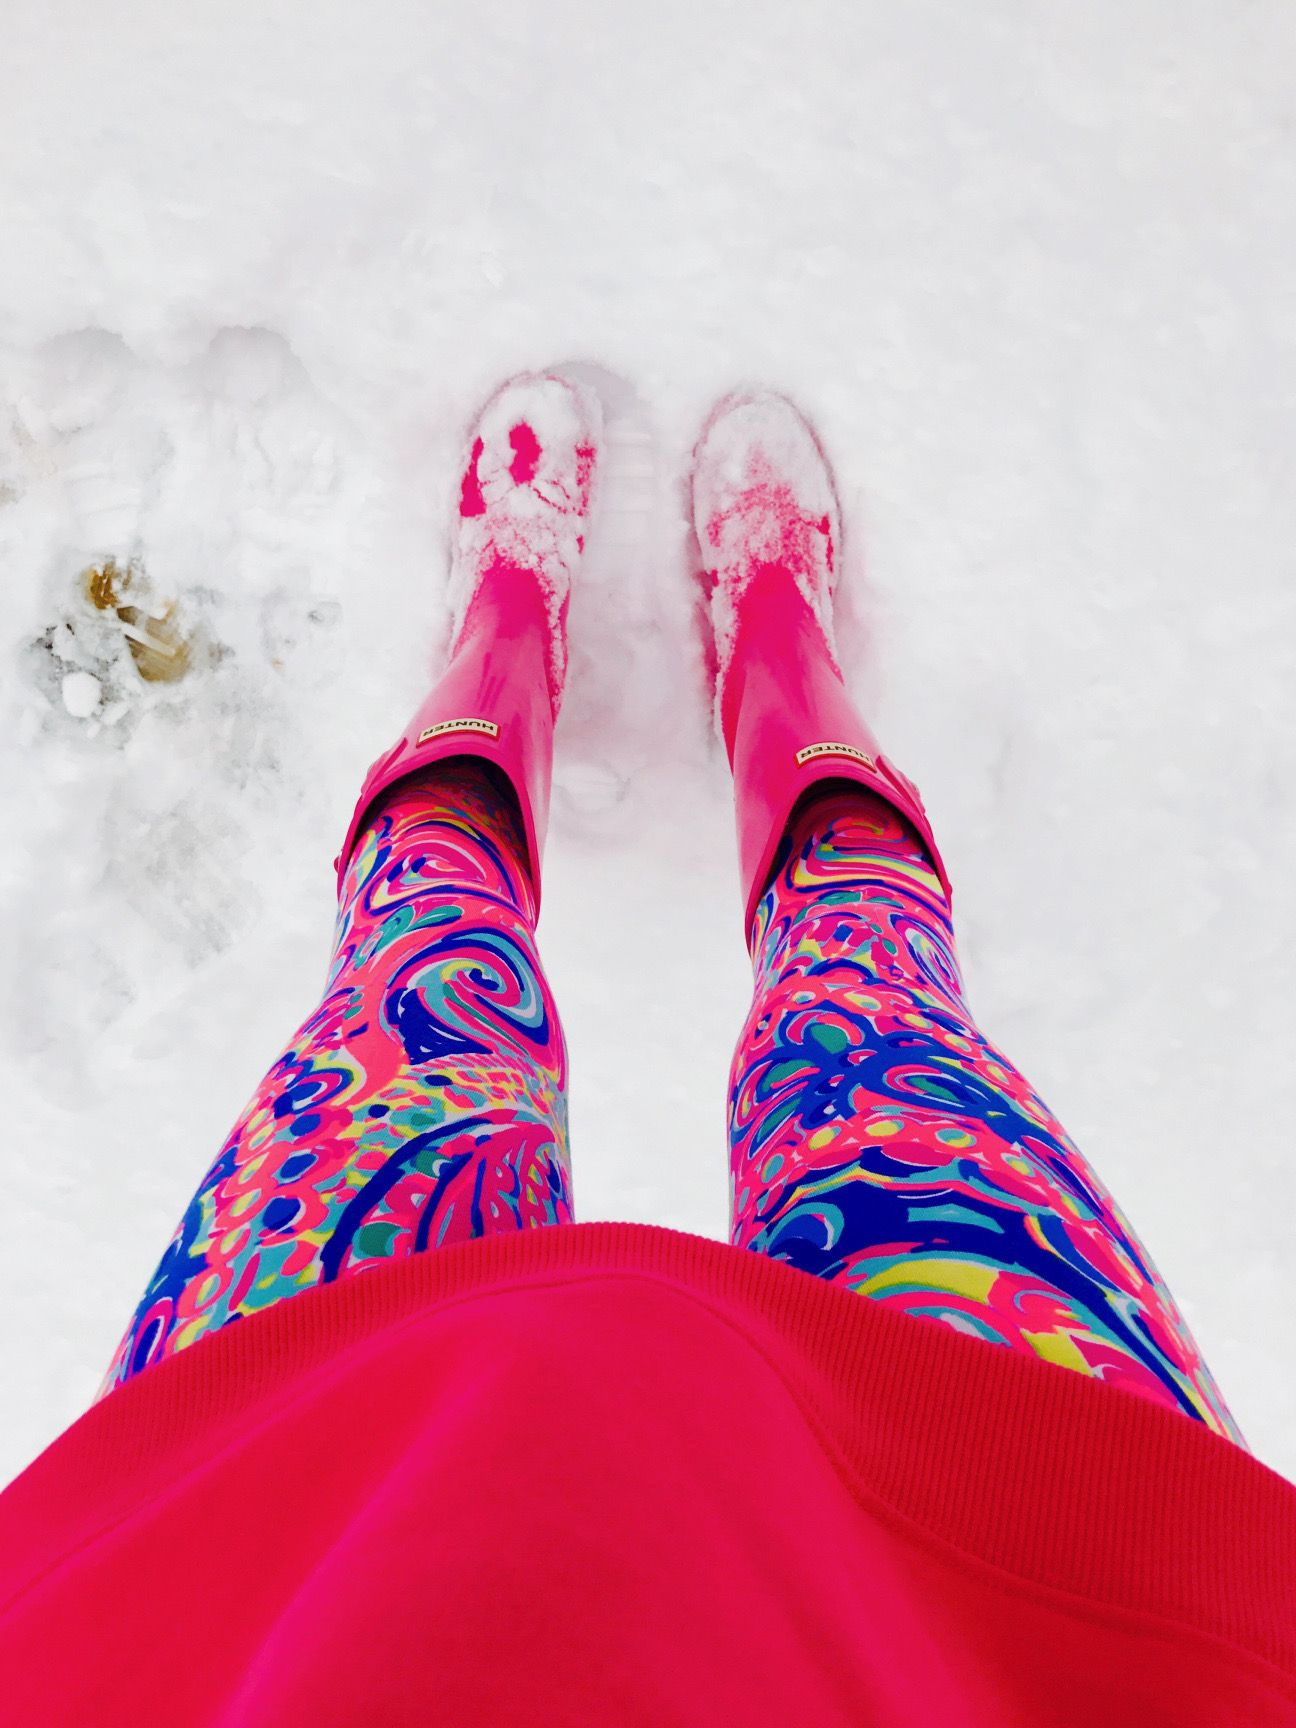 Lilly Pulitzer | ~Lilly Pulitzer~ | Pinterest